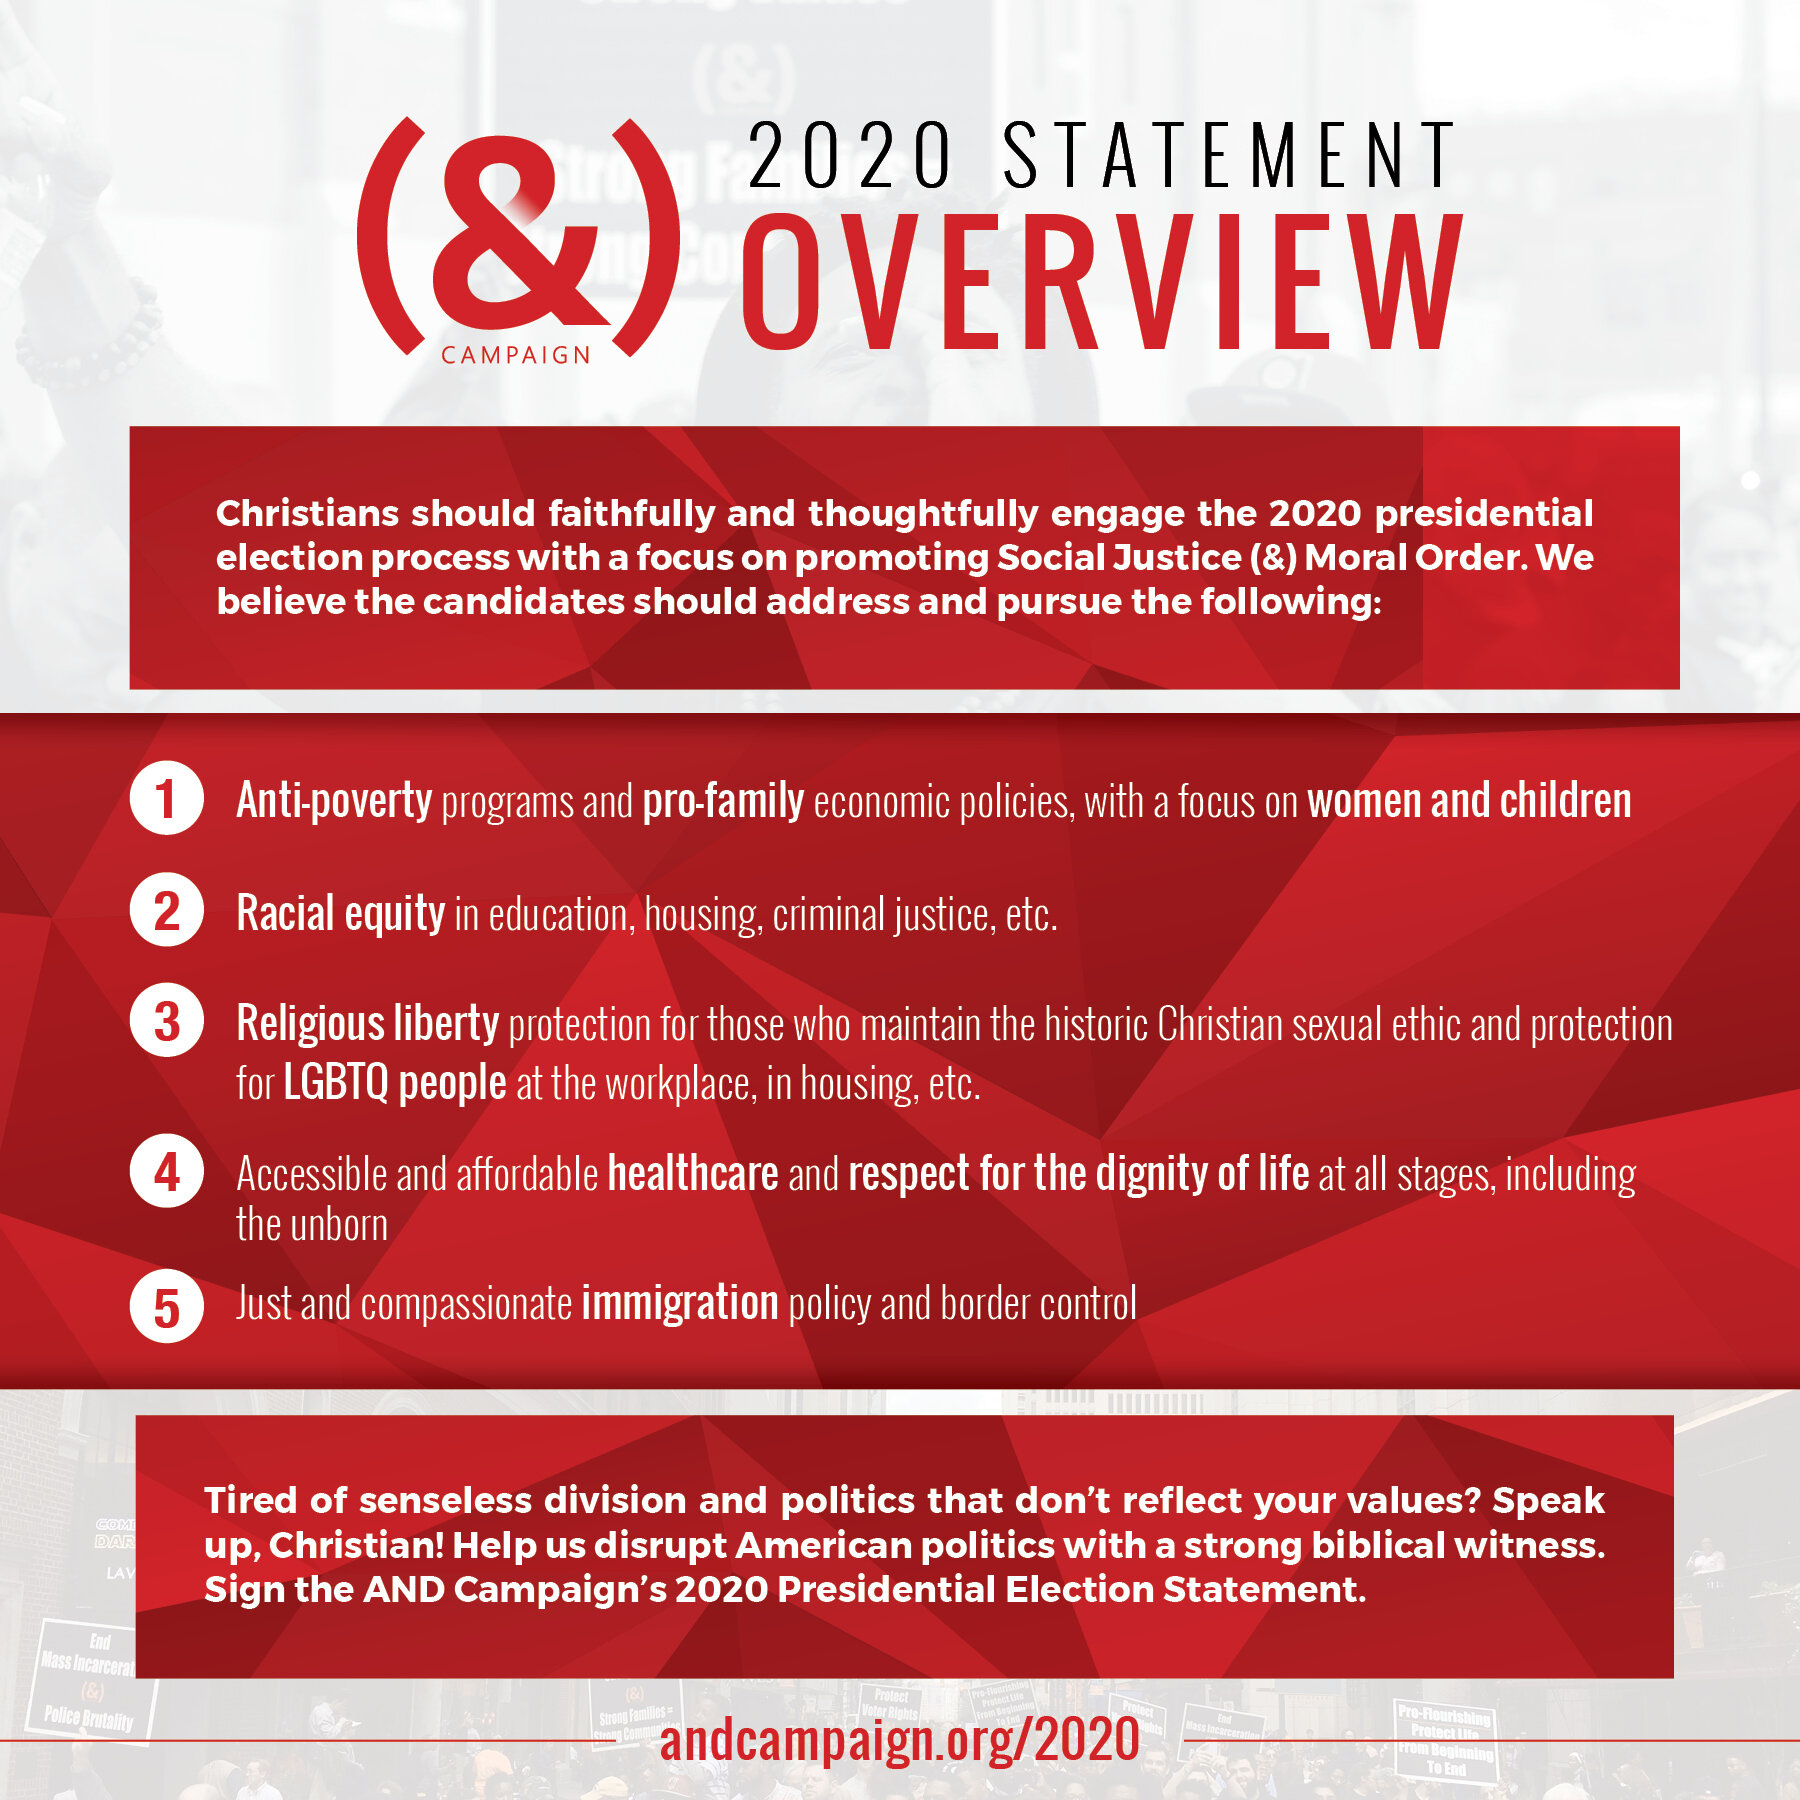 0209 &Campaign_2020StatementOverview_Graphic_Final.jpg